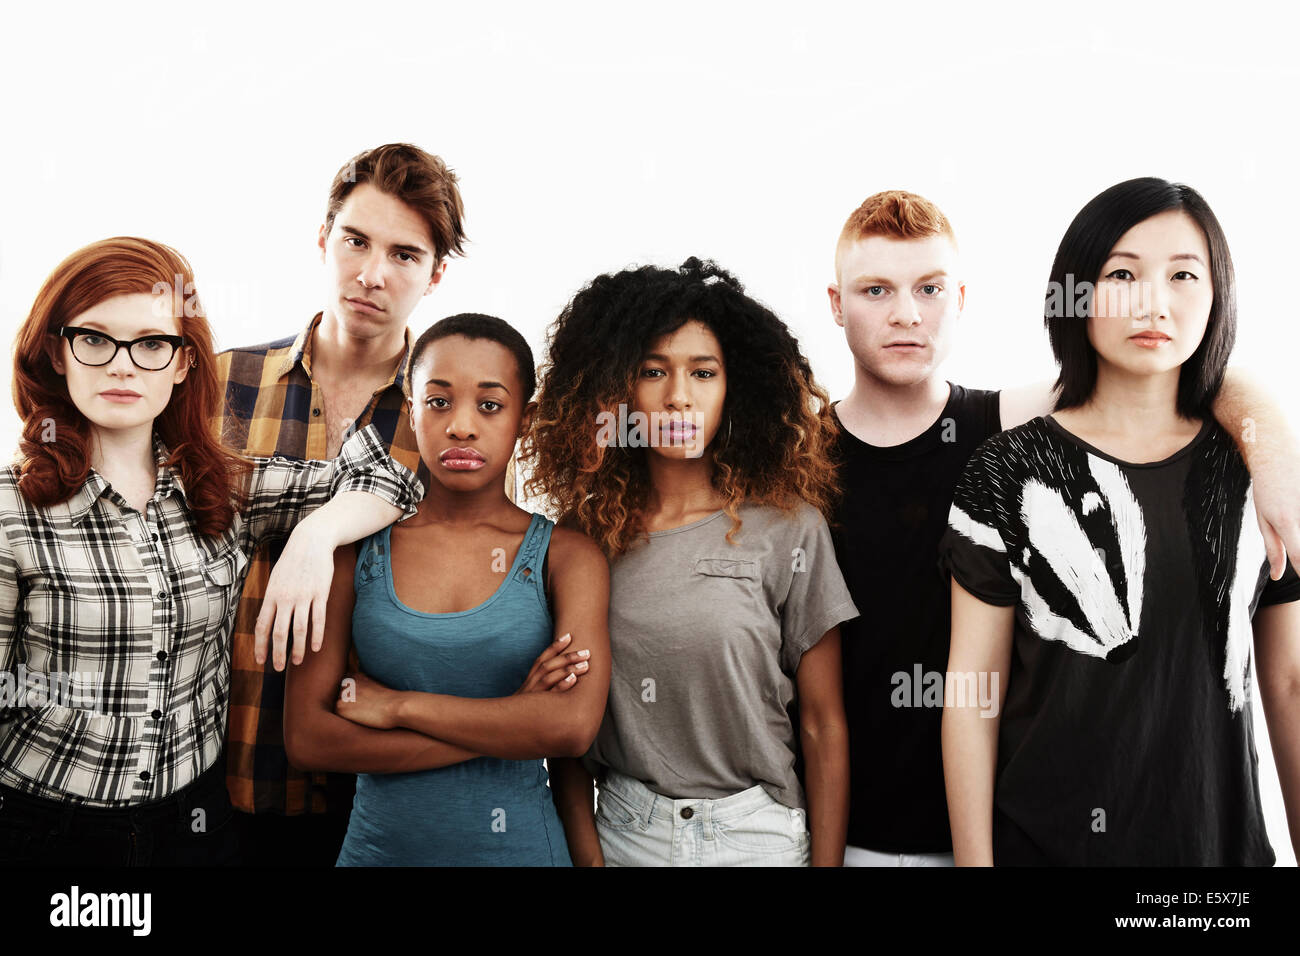 Formal studio portrait of six serious young adults - Stock Image